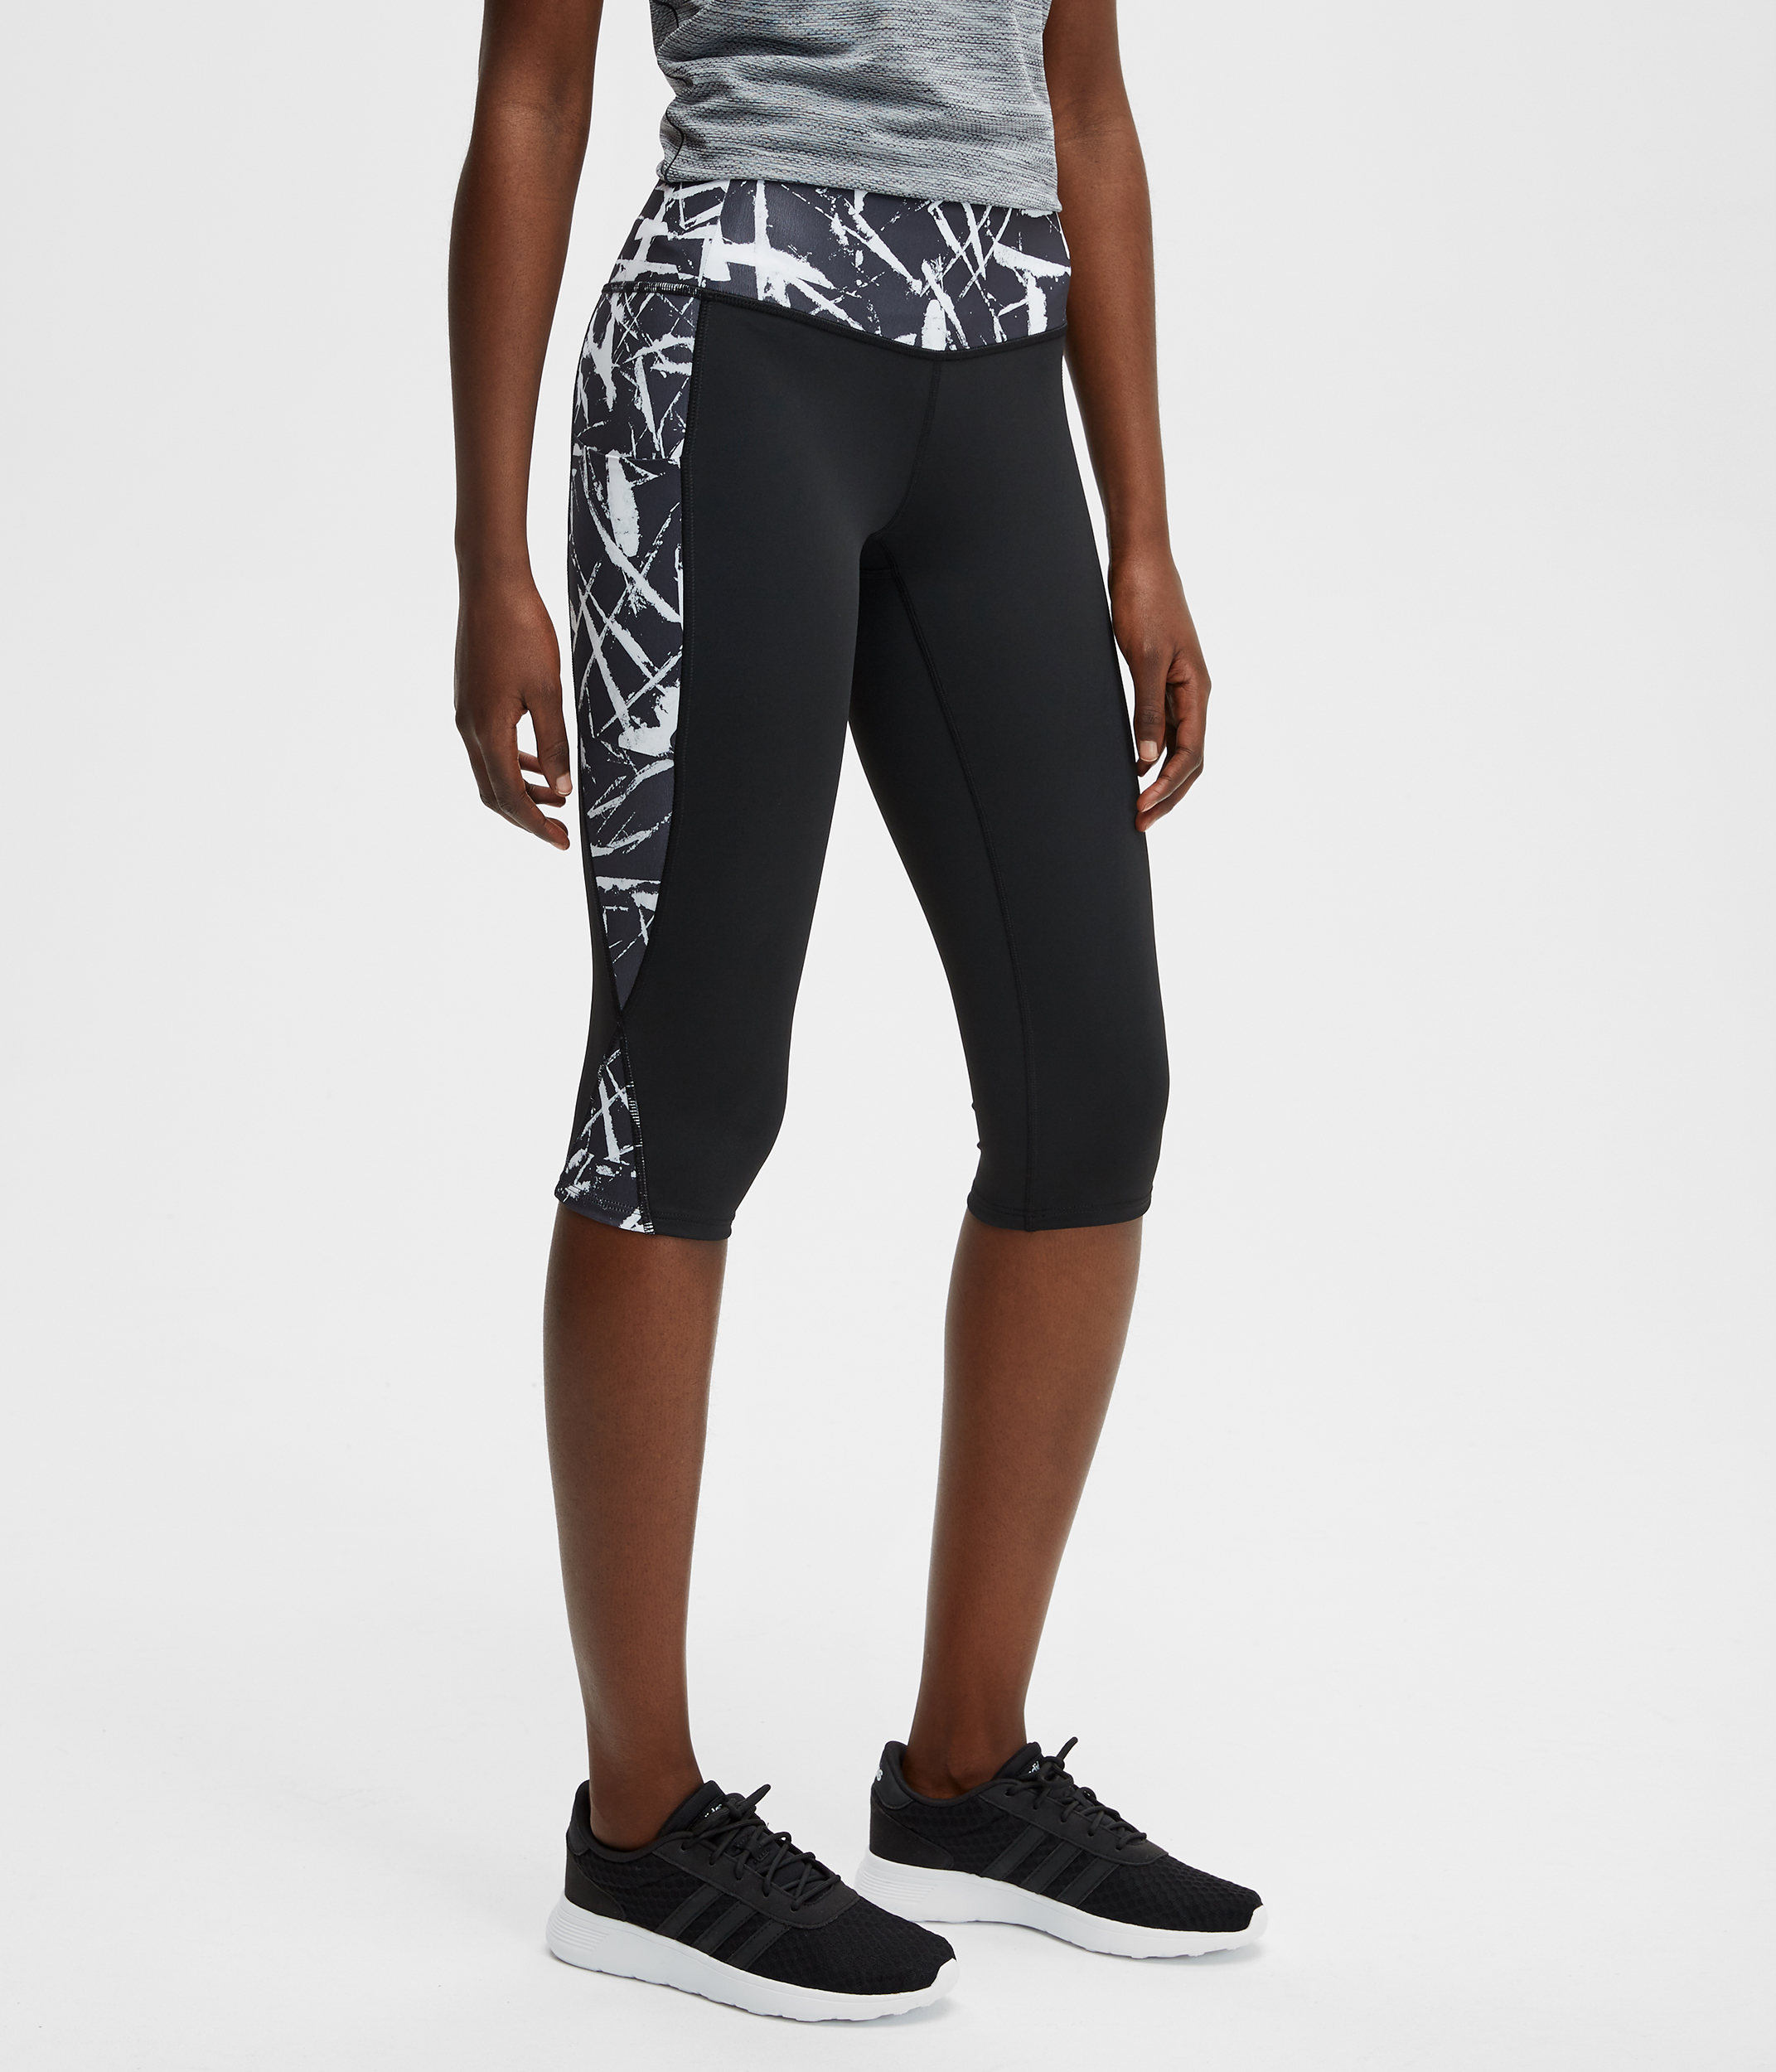 2c5047ebf8be0 Running shorts, tights and pants | MEC